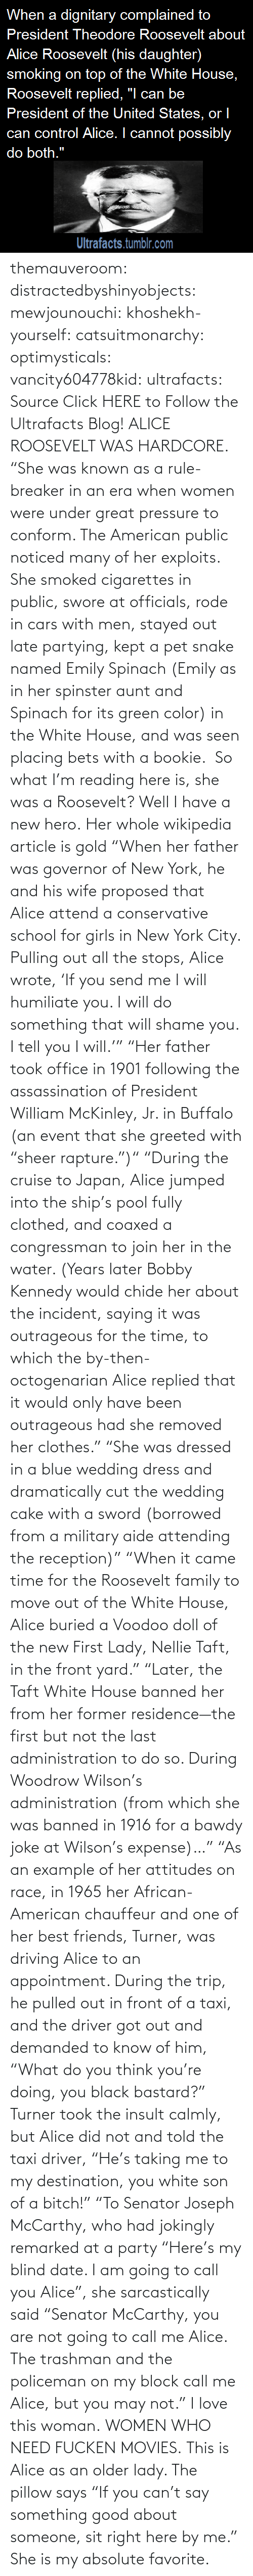 "shame: themauveroom: distractedbyshinyobjects:  mewjounouchi:  khoshekh-yourself:  catsuitmonarchy:  optimysticals:  vancity604778kid:  ultrafacts:     Source Click HERE to Follow the Ultrafacts Blog!     ALICE ROOSEVELT WAS HARDCORE. ""She was known as a rule-breaker in an era when women were under great pressure to conform. The American public noticed many of her exploits. She smoked cigarettes in public, swore at officials, rode in cars with men, stayed out late partying, kept a pet snake named Emily Spinach (Emily as in her spinster aunt and Spinach for its green color) in the White House, and was seen placing bets with a bookie.    So what I'm reading here is, she was a Roosevelt?  Well I have a new hero.  Her whole wikipedia article is gold ""When her father was governor of New York, he and his wife proposed that Alice attend a conservative school for girls in New York City. Pulling out all the stops, Alice wrote, 'If you send me I will humiliate you. I will do something that will shame you. I tell you I will.'"" ""Her father took office in 1901 following the assassination of President William McKinley, Jr. in Buffalo (an event that she greeted with ""sheer rapture."")"" ""During the cruise to Japan, Alice jumped into the ship's pool fully clothed, and coaxed a congressman to join her in the water. (Years later Bobby Kennedy would chide her about the incident, saying it was outrageous for the time, to which the by-then-octogenarian Alice replied that it would only have been outrageous had she removed her clothes."" ""She was dressed in a blue wedding dress and dramatically cut the wedding cake with a sword (borrowed from a military aide attending the reception)"" ""When it came time for the Roosevelt family to move out of the White House, Alice buried a Voodoo doll of the new First Lady, Nellie Taft, in the front yard."" ""Later, the Taft White House banned her from her former residence—the first but not the last administration to do so. During Woodrow Wilson's administration (from which she was banned in 1916 for a bawdy joke at Wilson's expense)…"" ""As an example of her attitudes on race, in 1965 her African-American chauffeur and one of her best friends, Turner, was driving Alice to an appointment. During the trip, he pulled out in front of a taxi, and the driver got out and demanded to know of him, ""What do you think you're doing, you black bastard?"" Turner took the insult calmly, but Alice did not and told the taxi driver, ""He's taking me to my destination, you white son of a bitch!"" ""To Senator Joseph McCarthy, who had jokingly remarked at a party ""Here's my blind date. I am going to call you Alice"", she sarcastically said ""Senator McCarthy, you are not going to call me Alice. The trashman and the policeman on my block call me Alice, but you may not.""  I love this woman.  WOMEN WHO NEED FUCKEN MOVIES.   This is Alice as an older lady. The pillow says ""If you can't say something good about someone, sit right here by me.""  She is my absolute favorite."